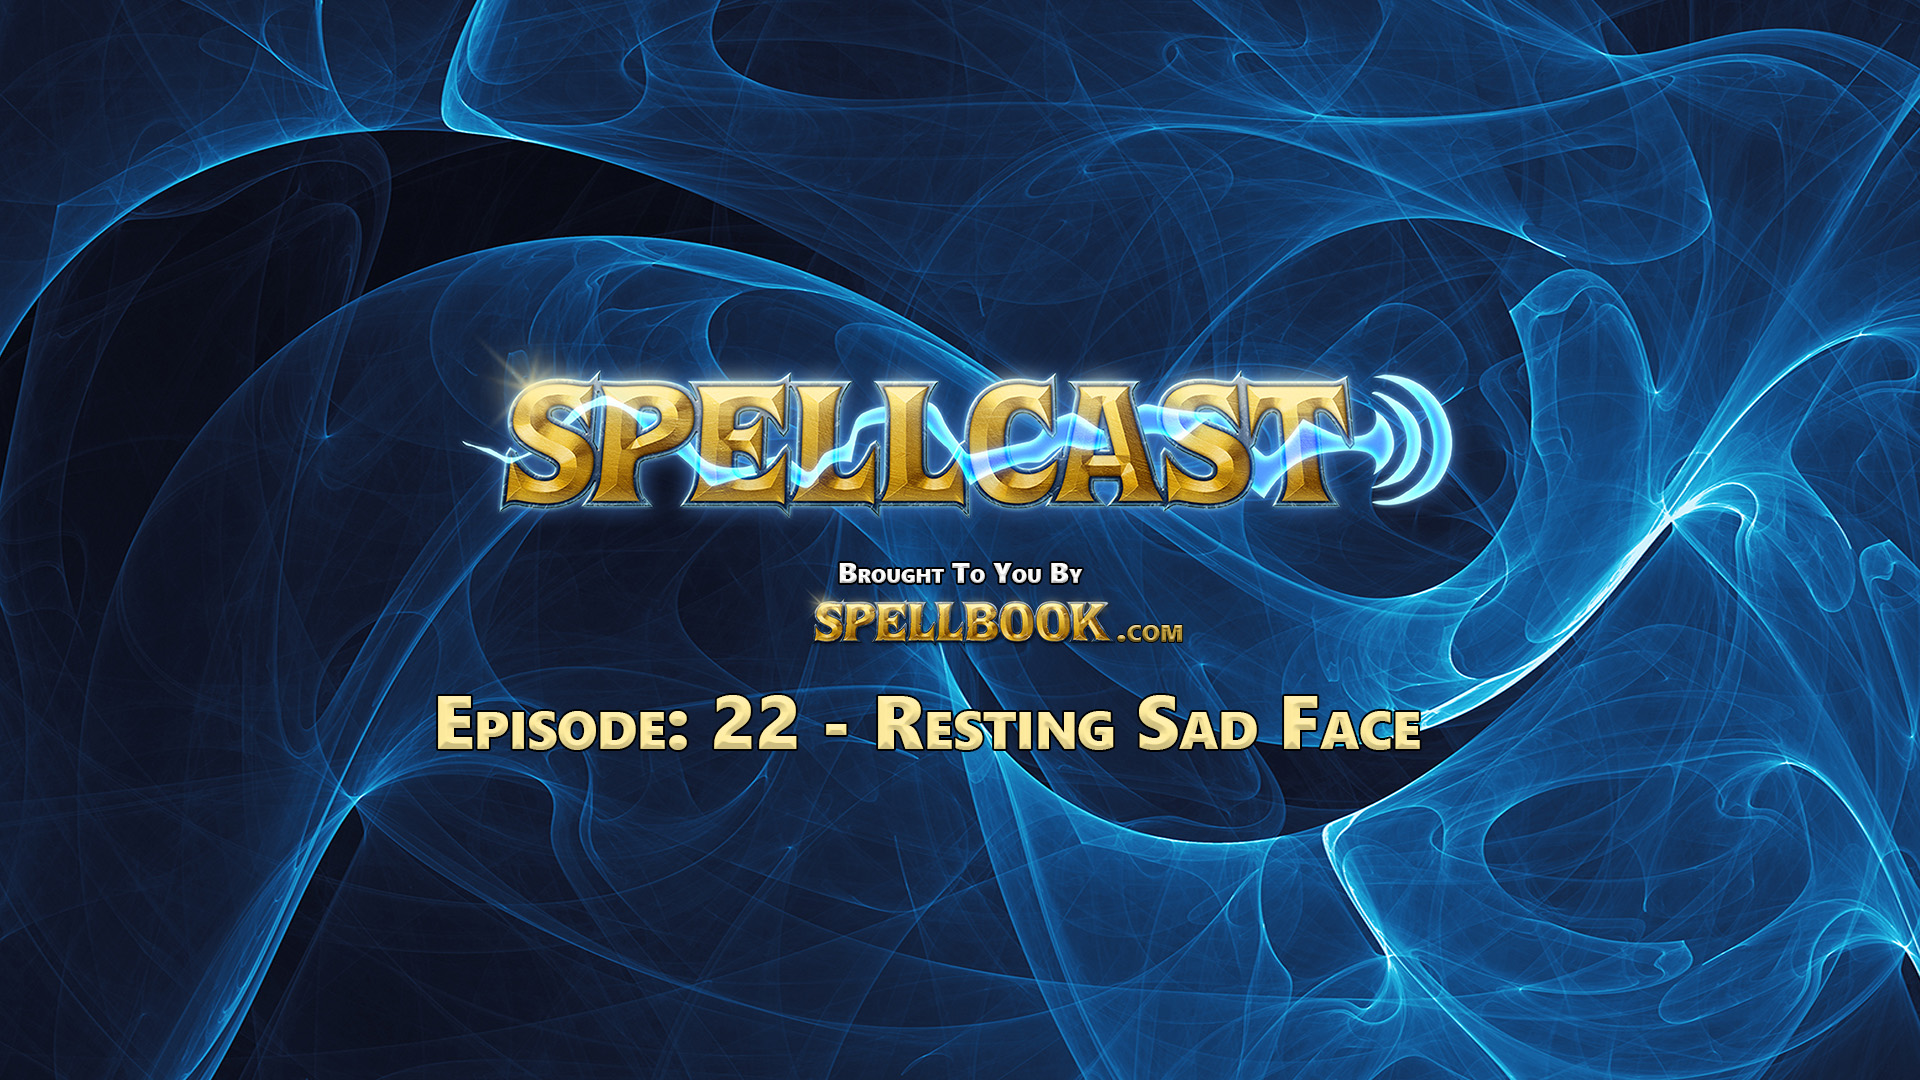 Spellcast Episode: 22 - Resting Sad Face